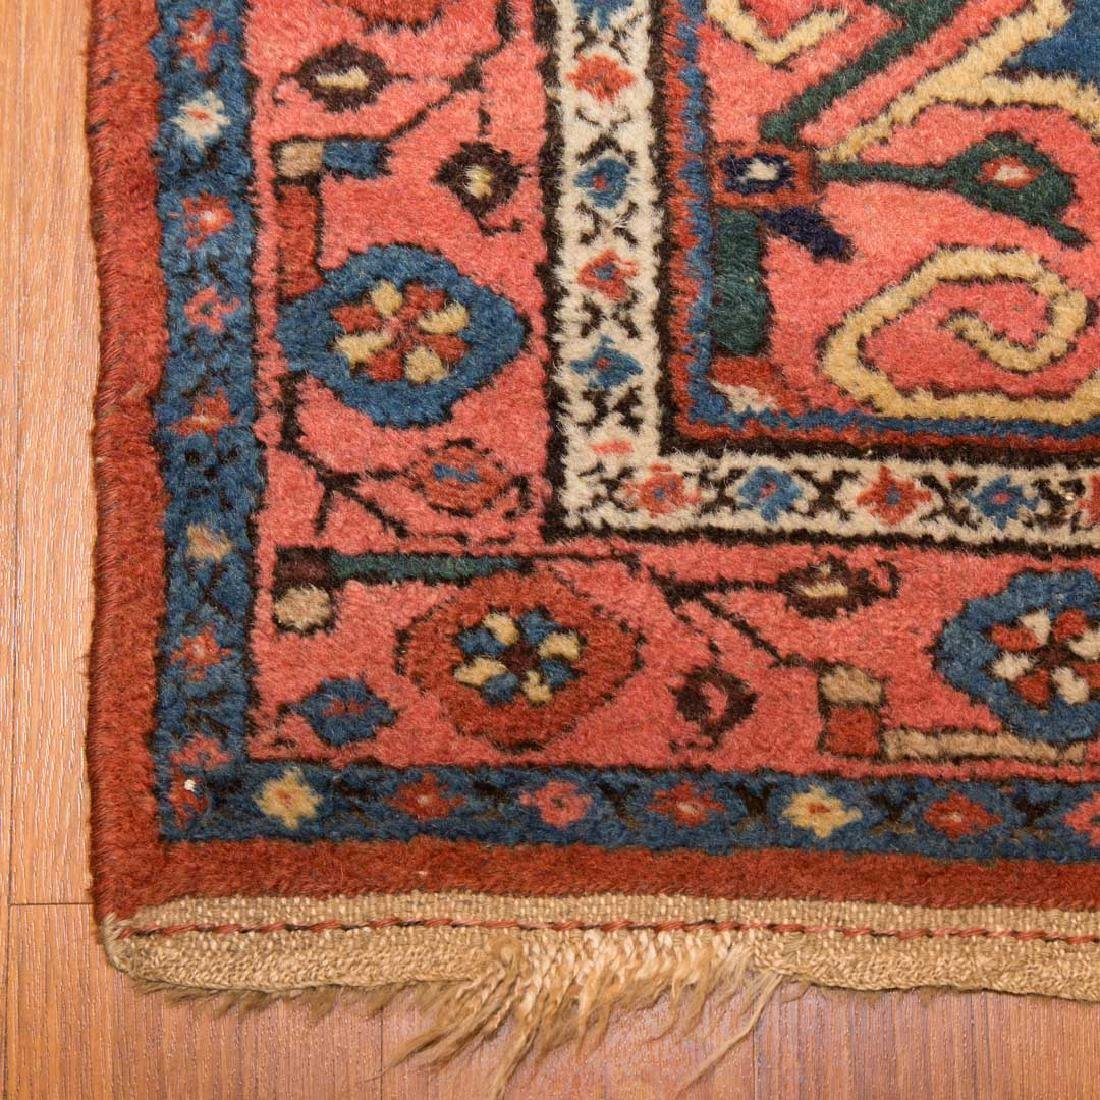 Antique Hamadan rug, approx. 3.7 x 6.4 - 2